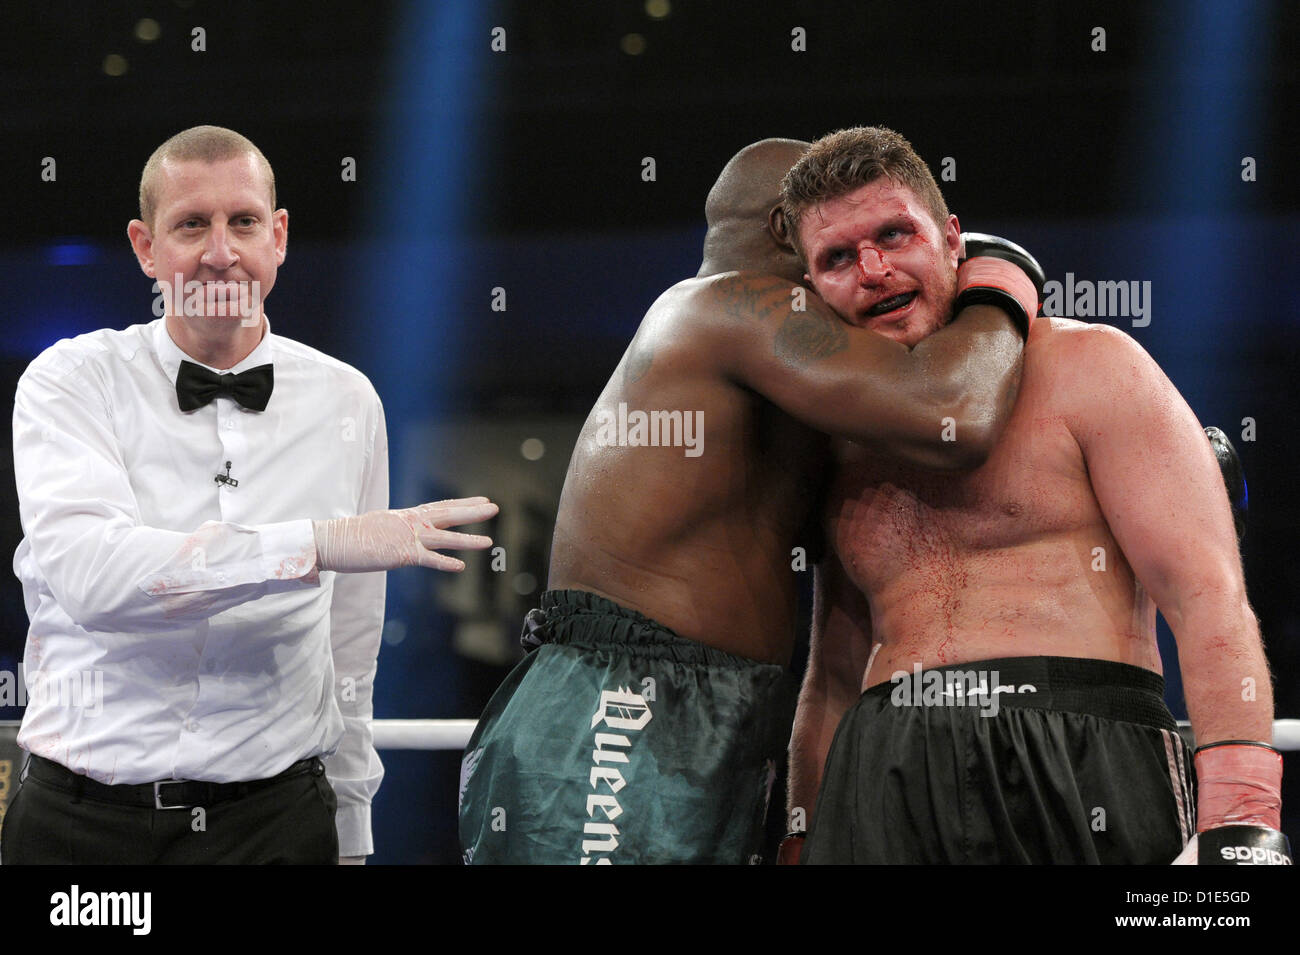 German boxer Edmund Gerber (L) and the Briton Michael Sprott gesture after their boxing match at the Arena Nuernberger Stock Photo